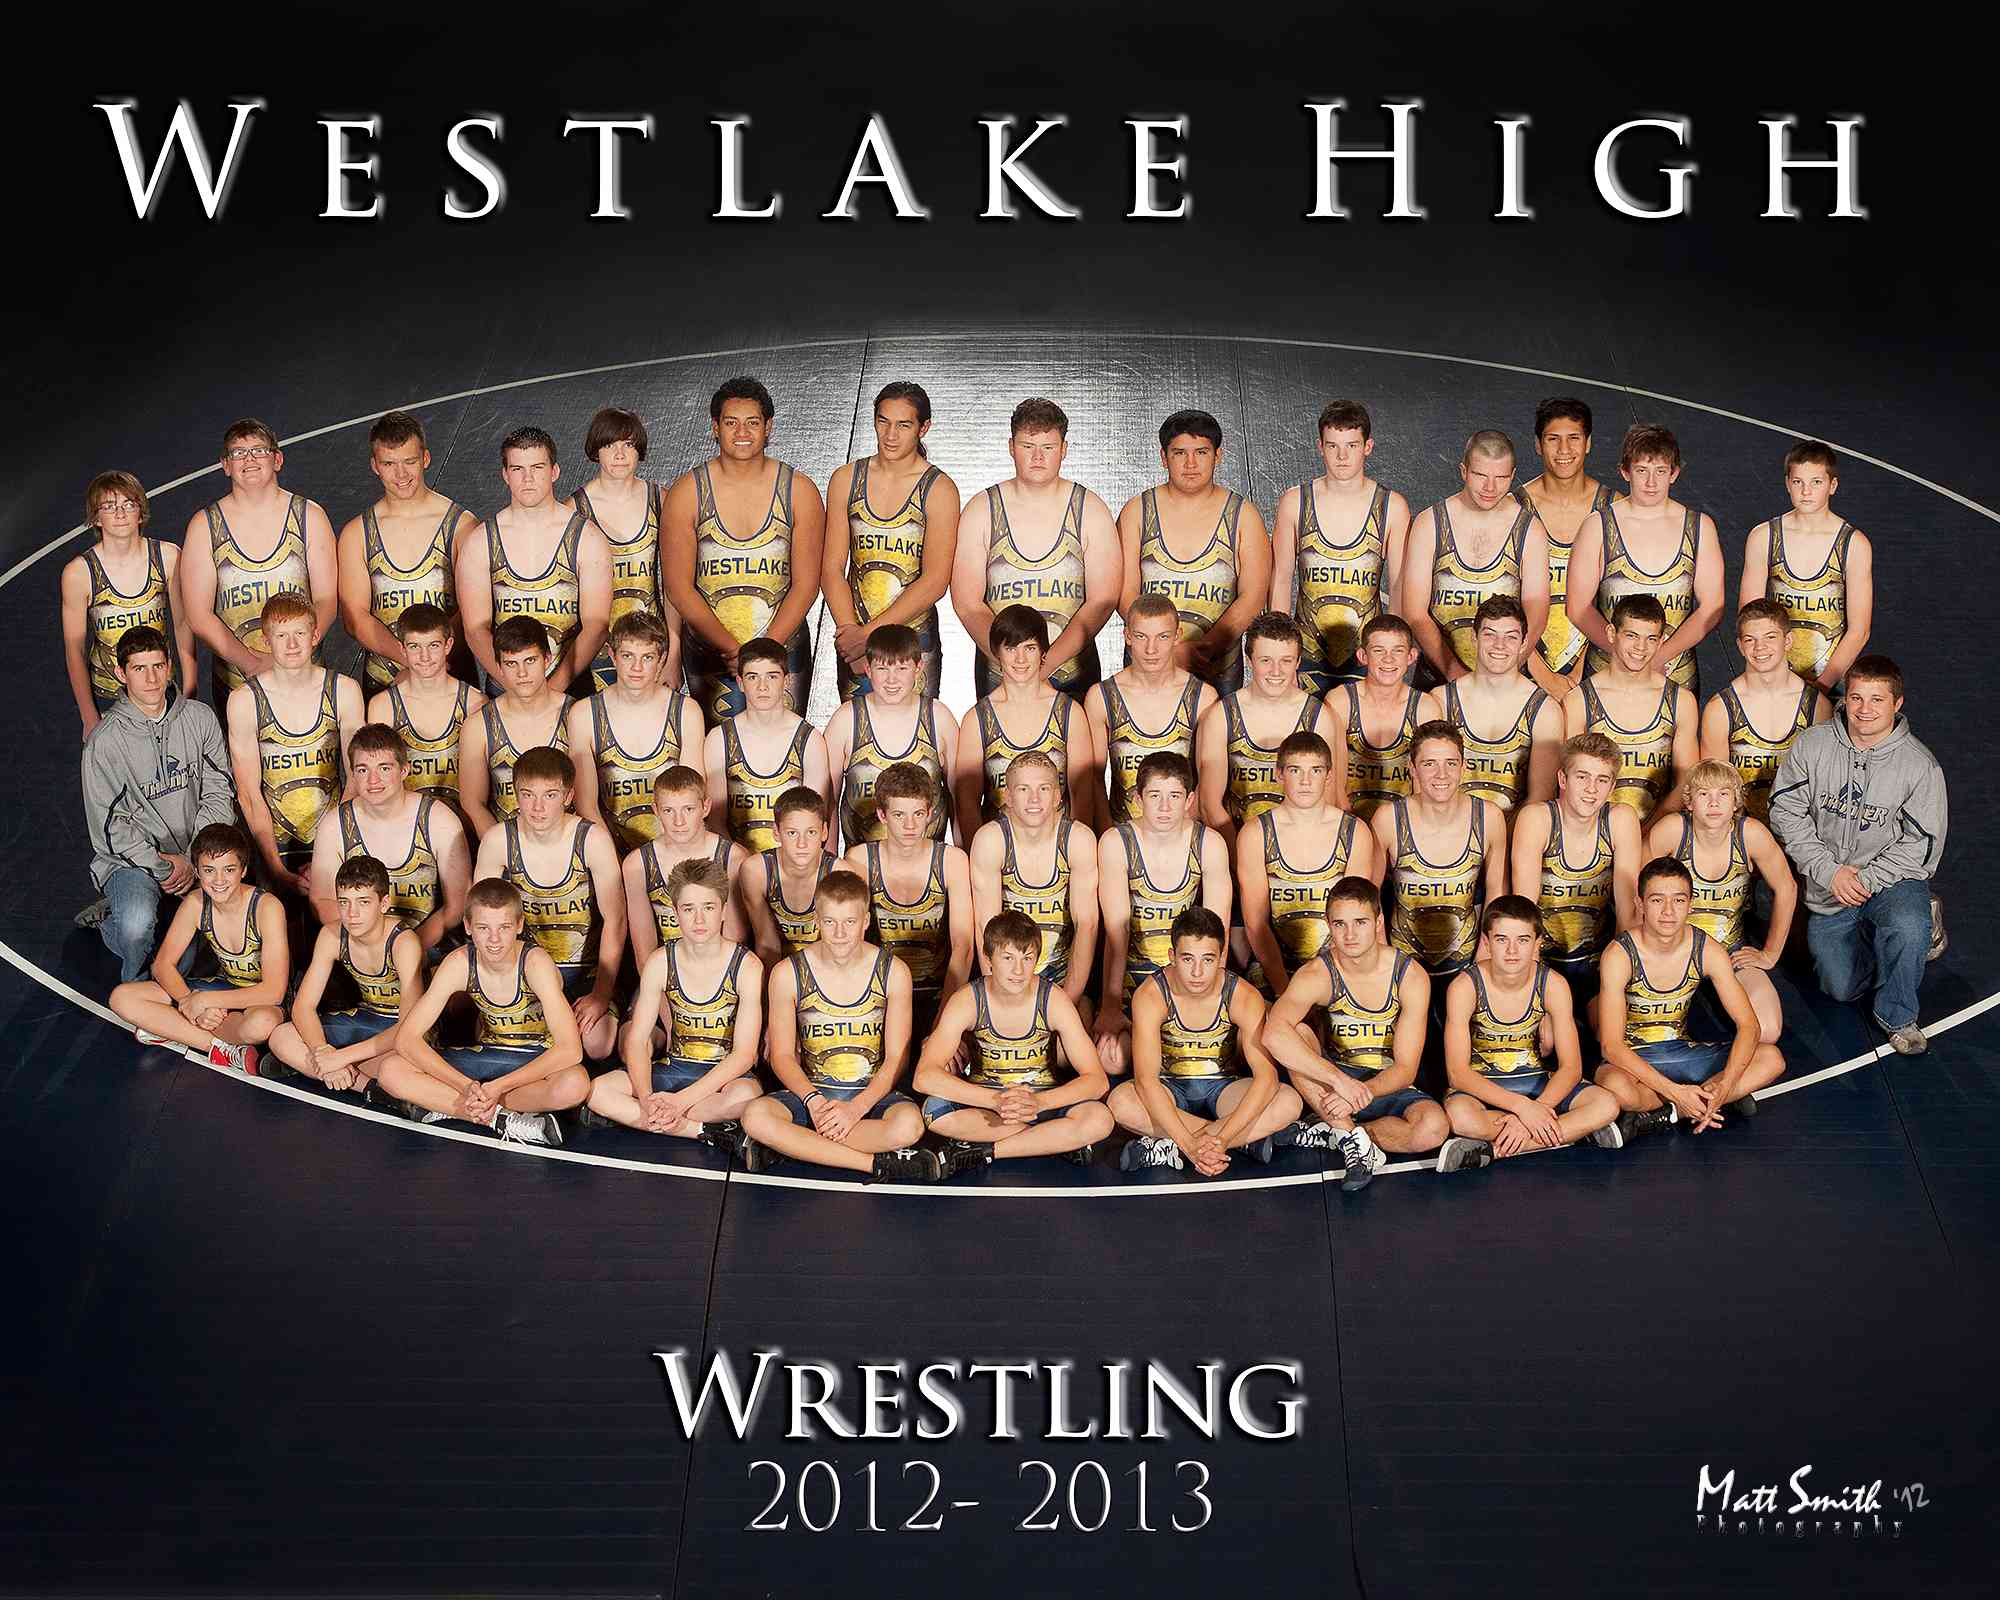 Westlake_Wrestling2012_TEXT_40301.jpg